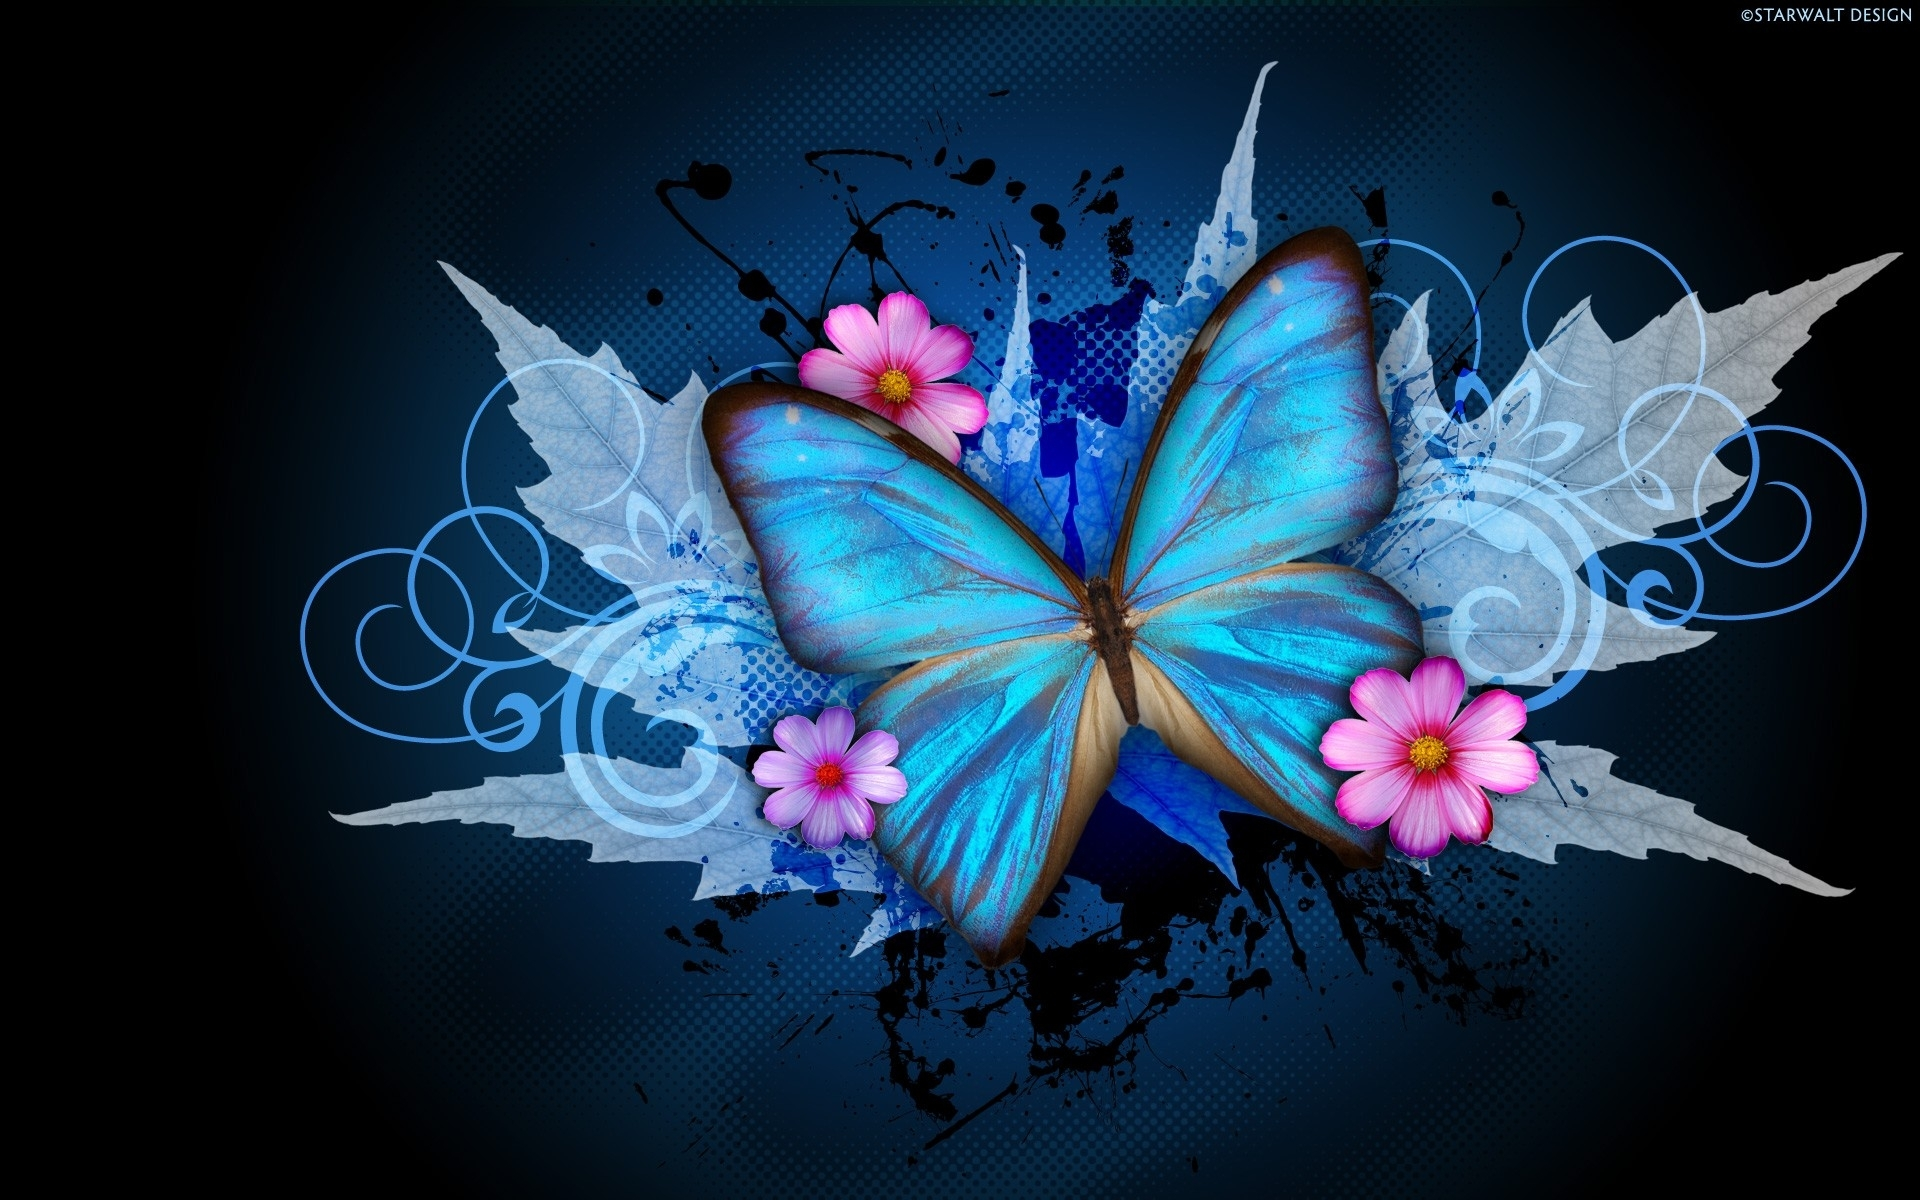 ws_Abstract_Butterfly_&_Flowers_1920x1200